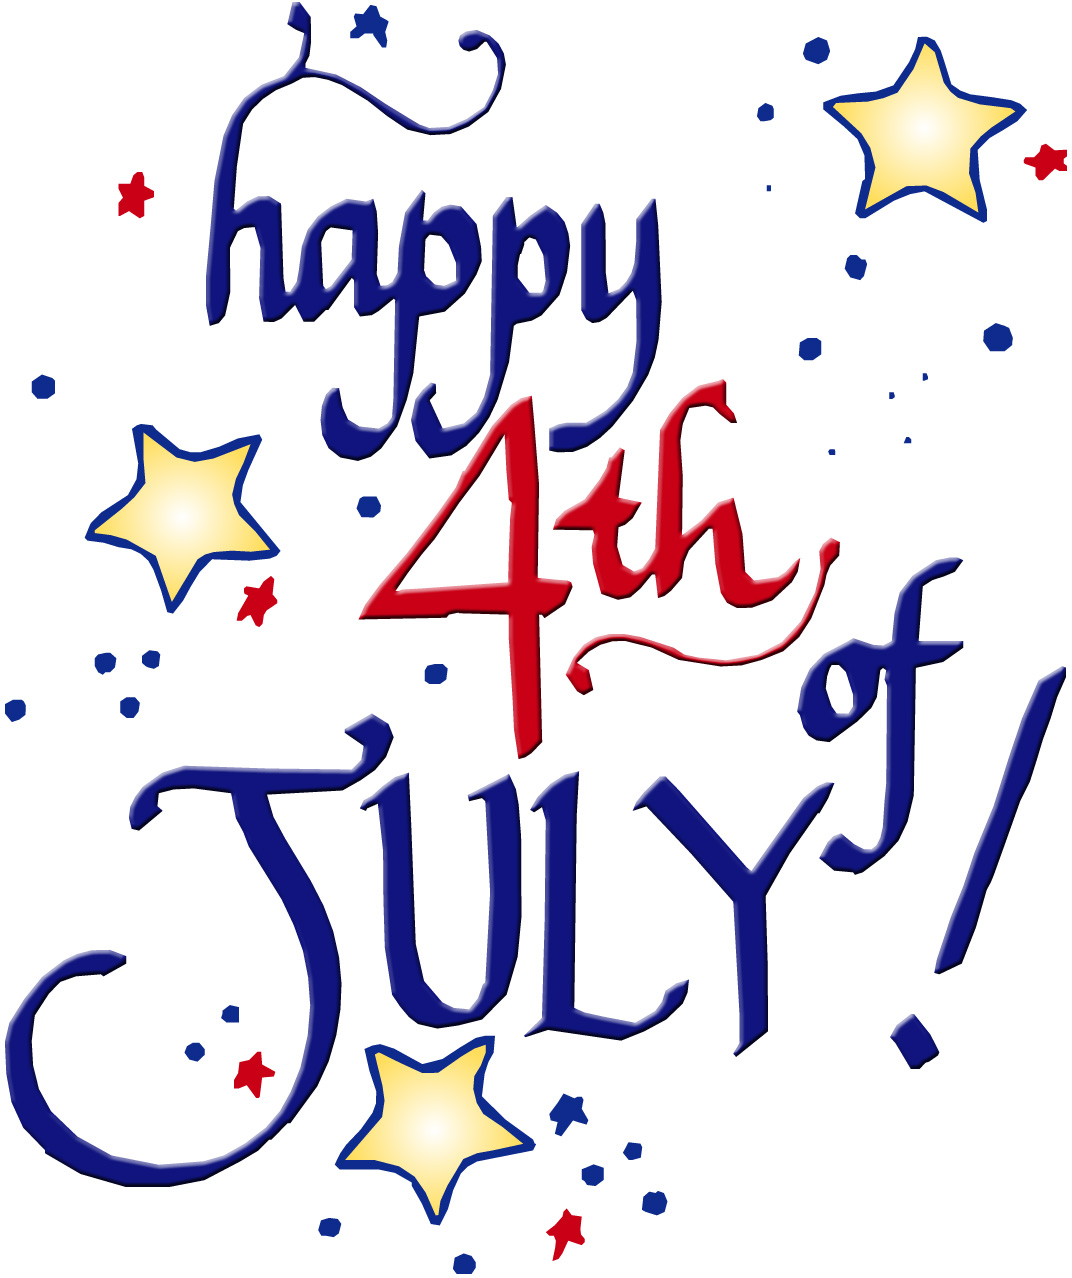 Free Clipart Google Images July 4th Scho-Free Clipart Google Images July 4th School Clipart-16